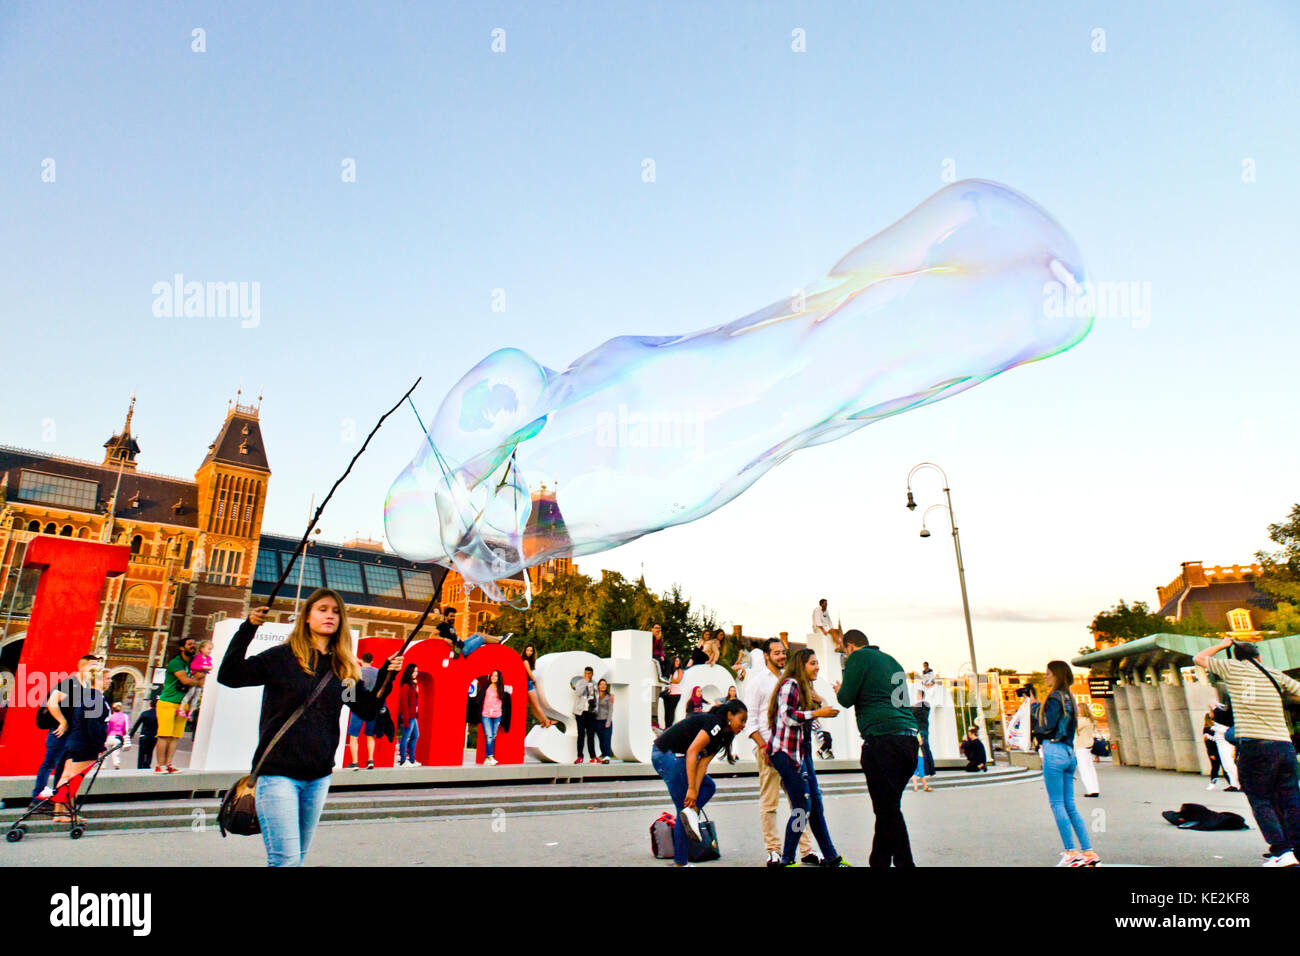 A street performer creates a giant soap bubble near the I Amsterdam logo on the Museumplein in Amsterdam - Stock Image